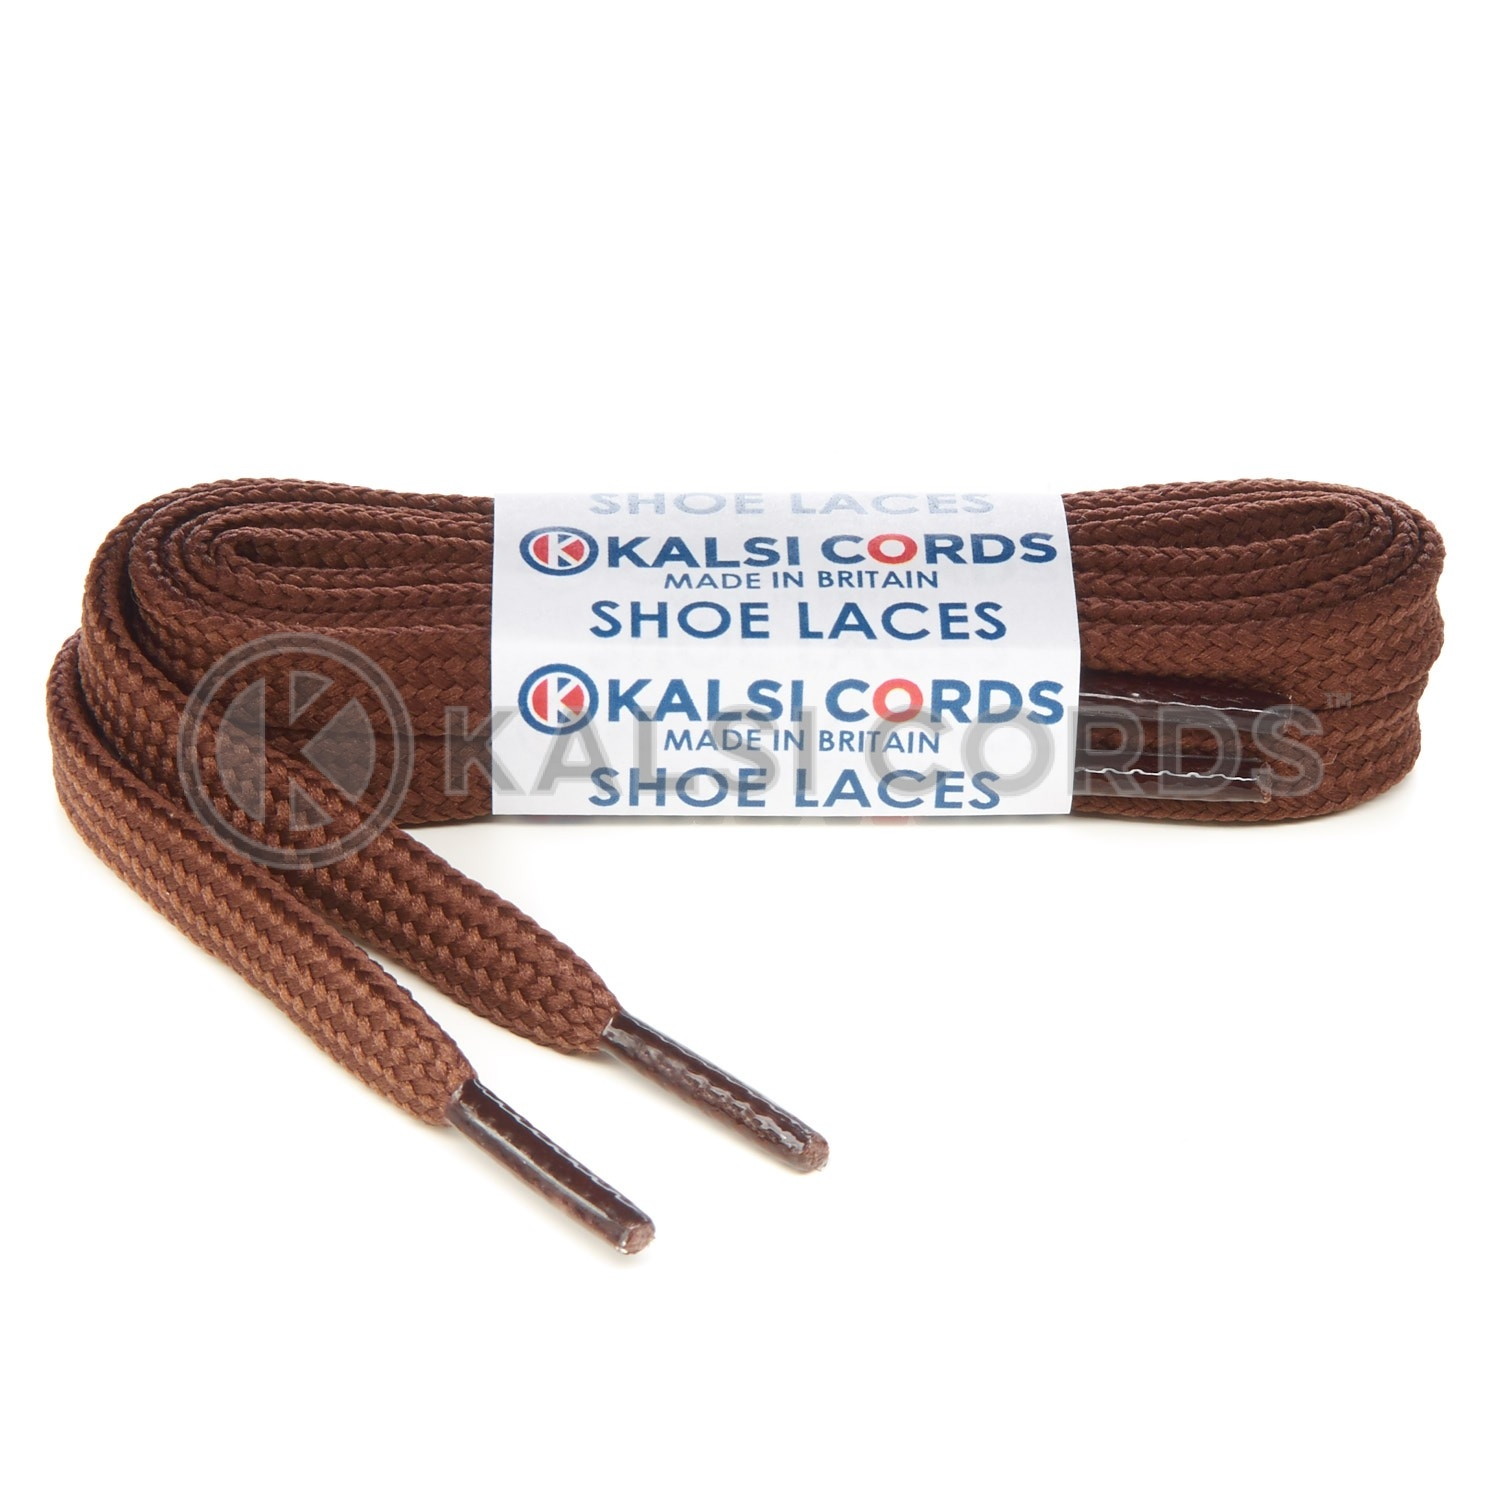 R1176 9mm Flat Shoe Laces Tubular York Brown PG656 Sports Trainers Boots Footwear Hoodies Joggers Drawstring Drawcord Braid